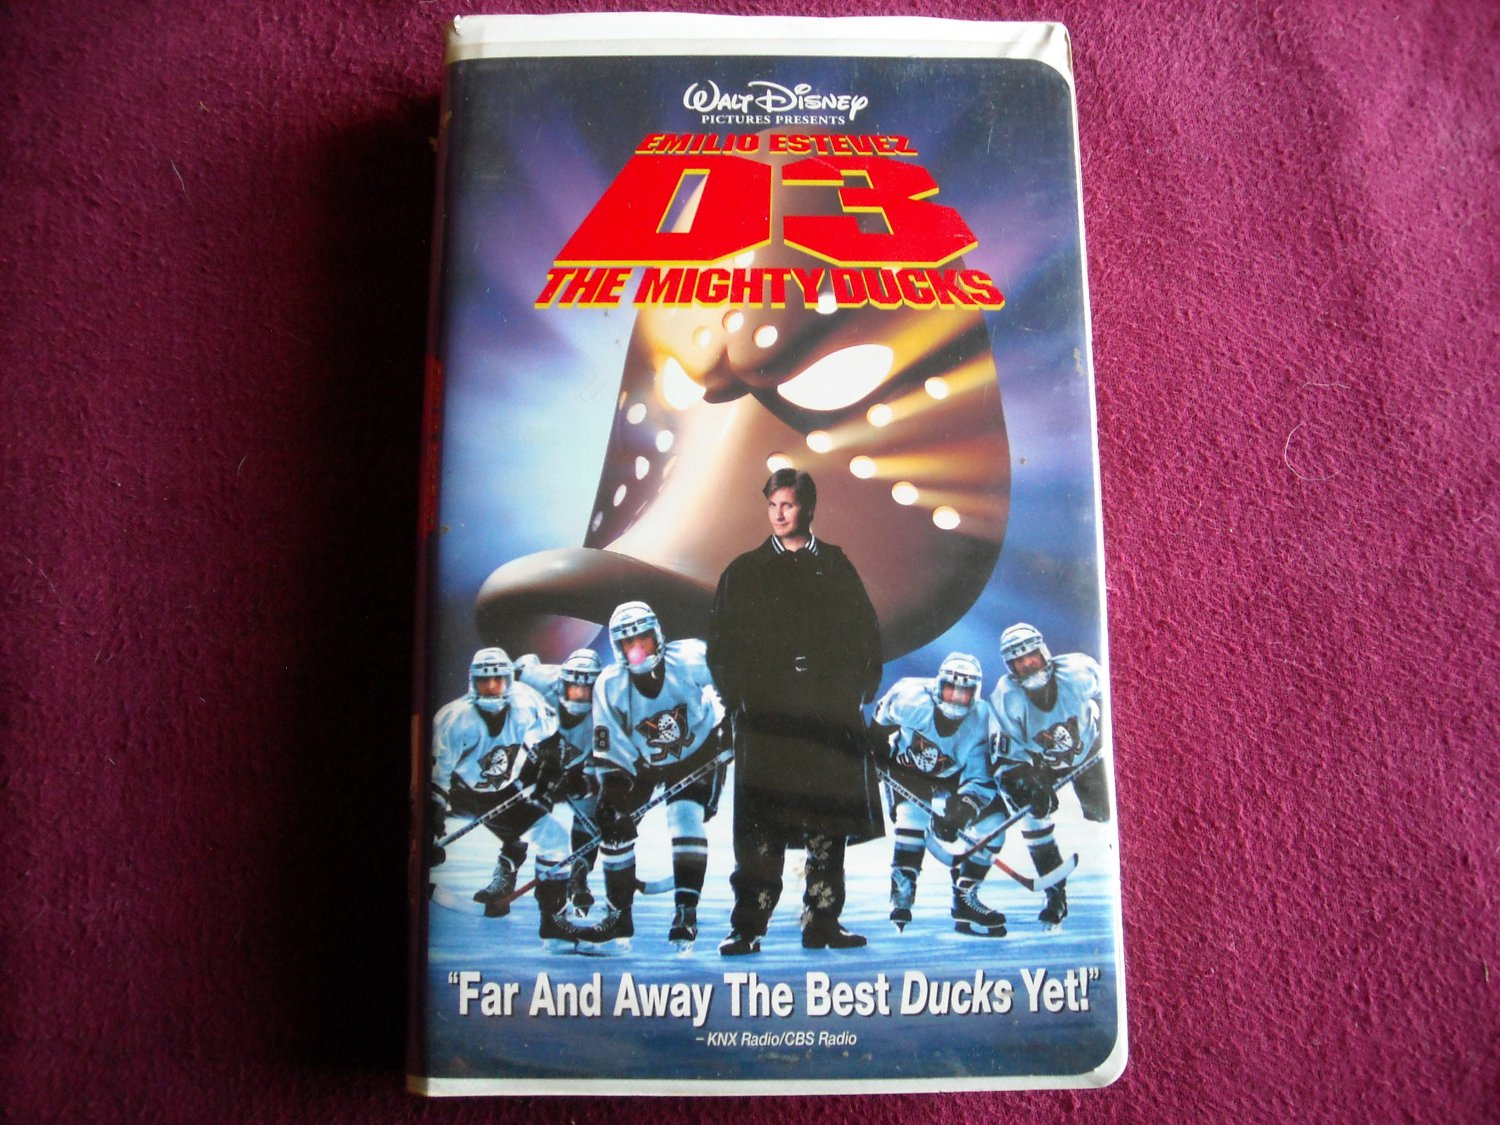 The Mighty Ducks D3 (VHS) Emilio Estevez / Jeffrey Nording / David Selby  (1996) PG